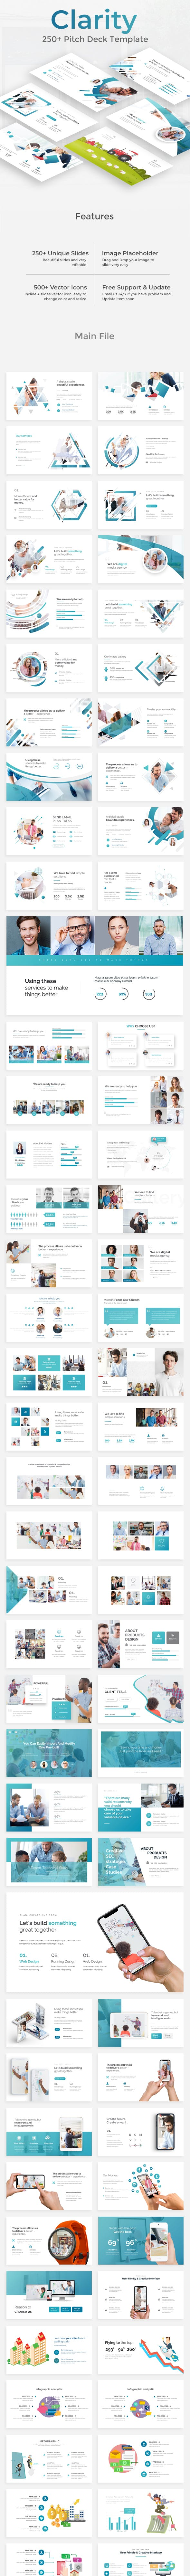 clarity pitch deck google slide template by zinstudio graphicriver